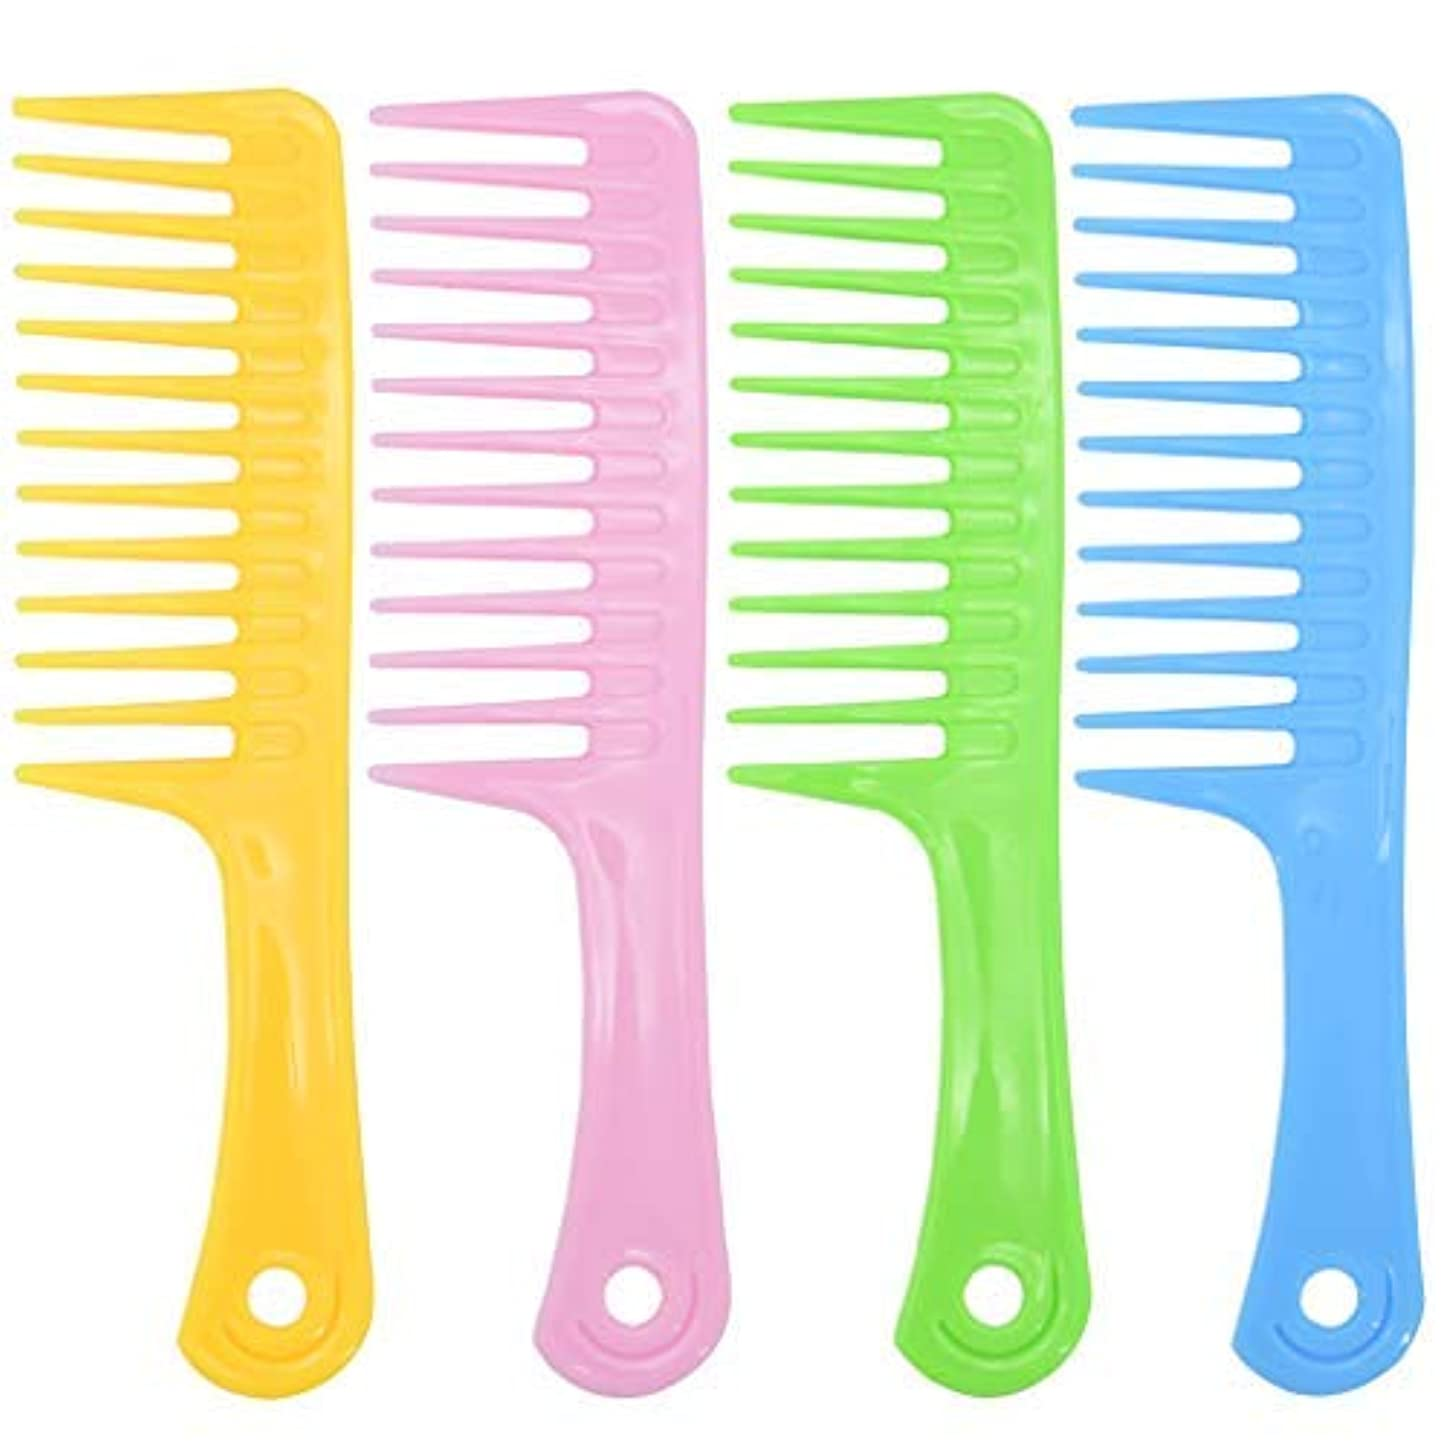 バドミントン南東落ち着いたAncefine 8 Pieces Large Tooth Detangle Comb Anti-static Wide Hair Salon Shampoo Comb for Thick,Long and Curl Hair,9 1/2 Inches [並行輸入品]